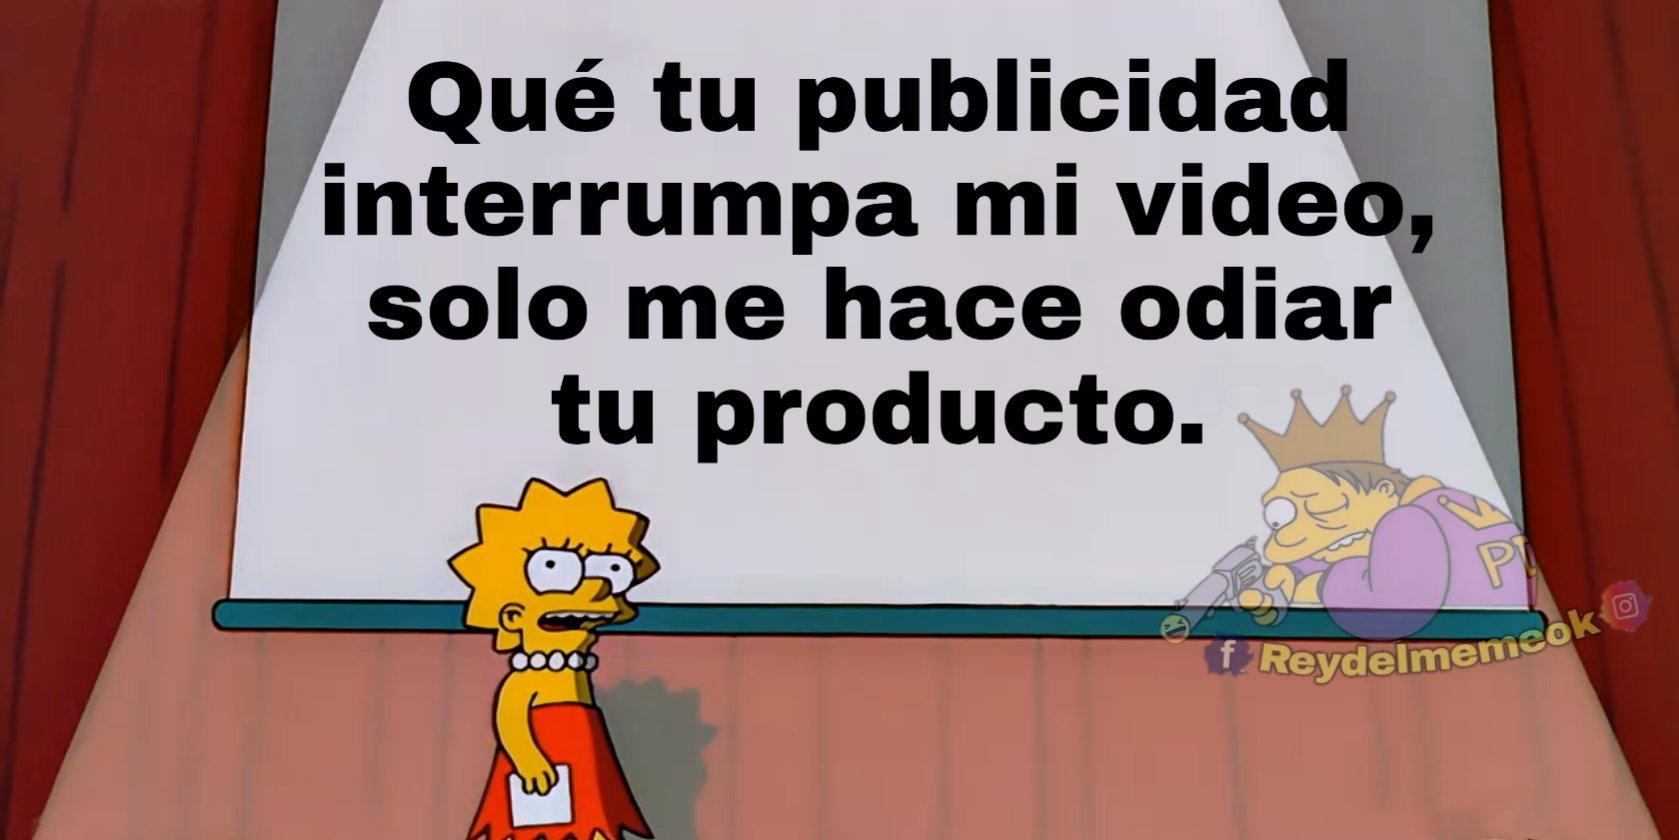 Publicidad en YouTube be like - meme